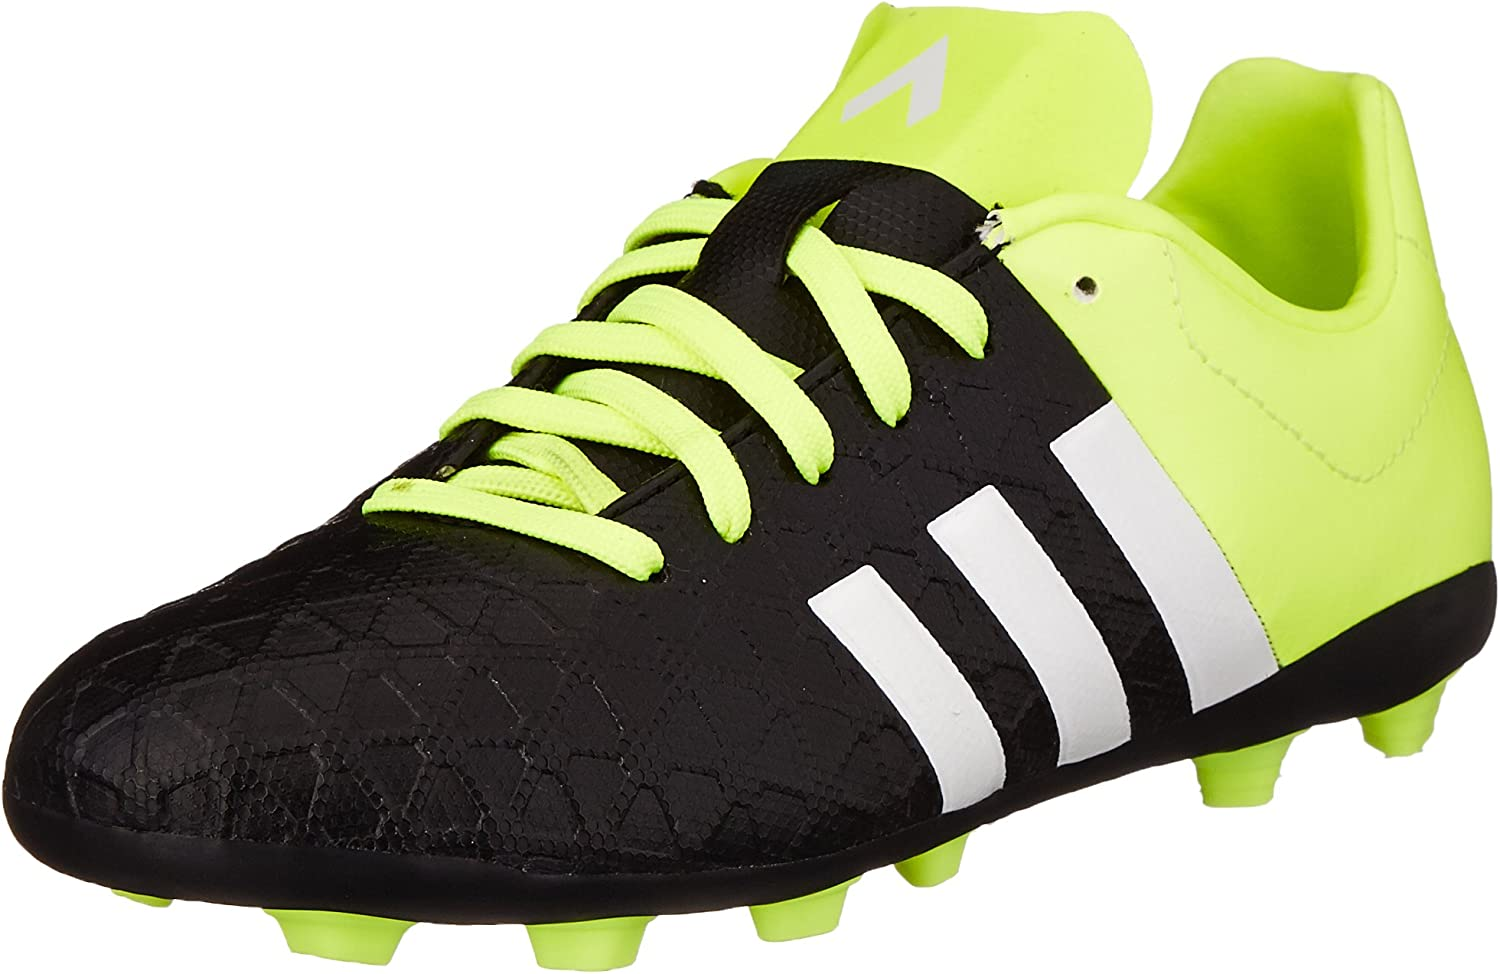 adidas Performance Ace 15.4 FG J Soccer Shoe Little Kid//Big Kid